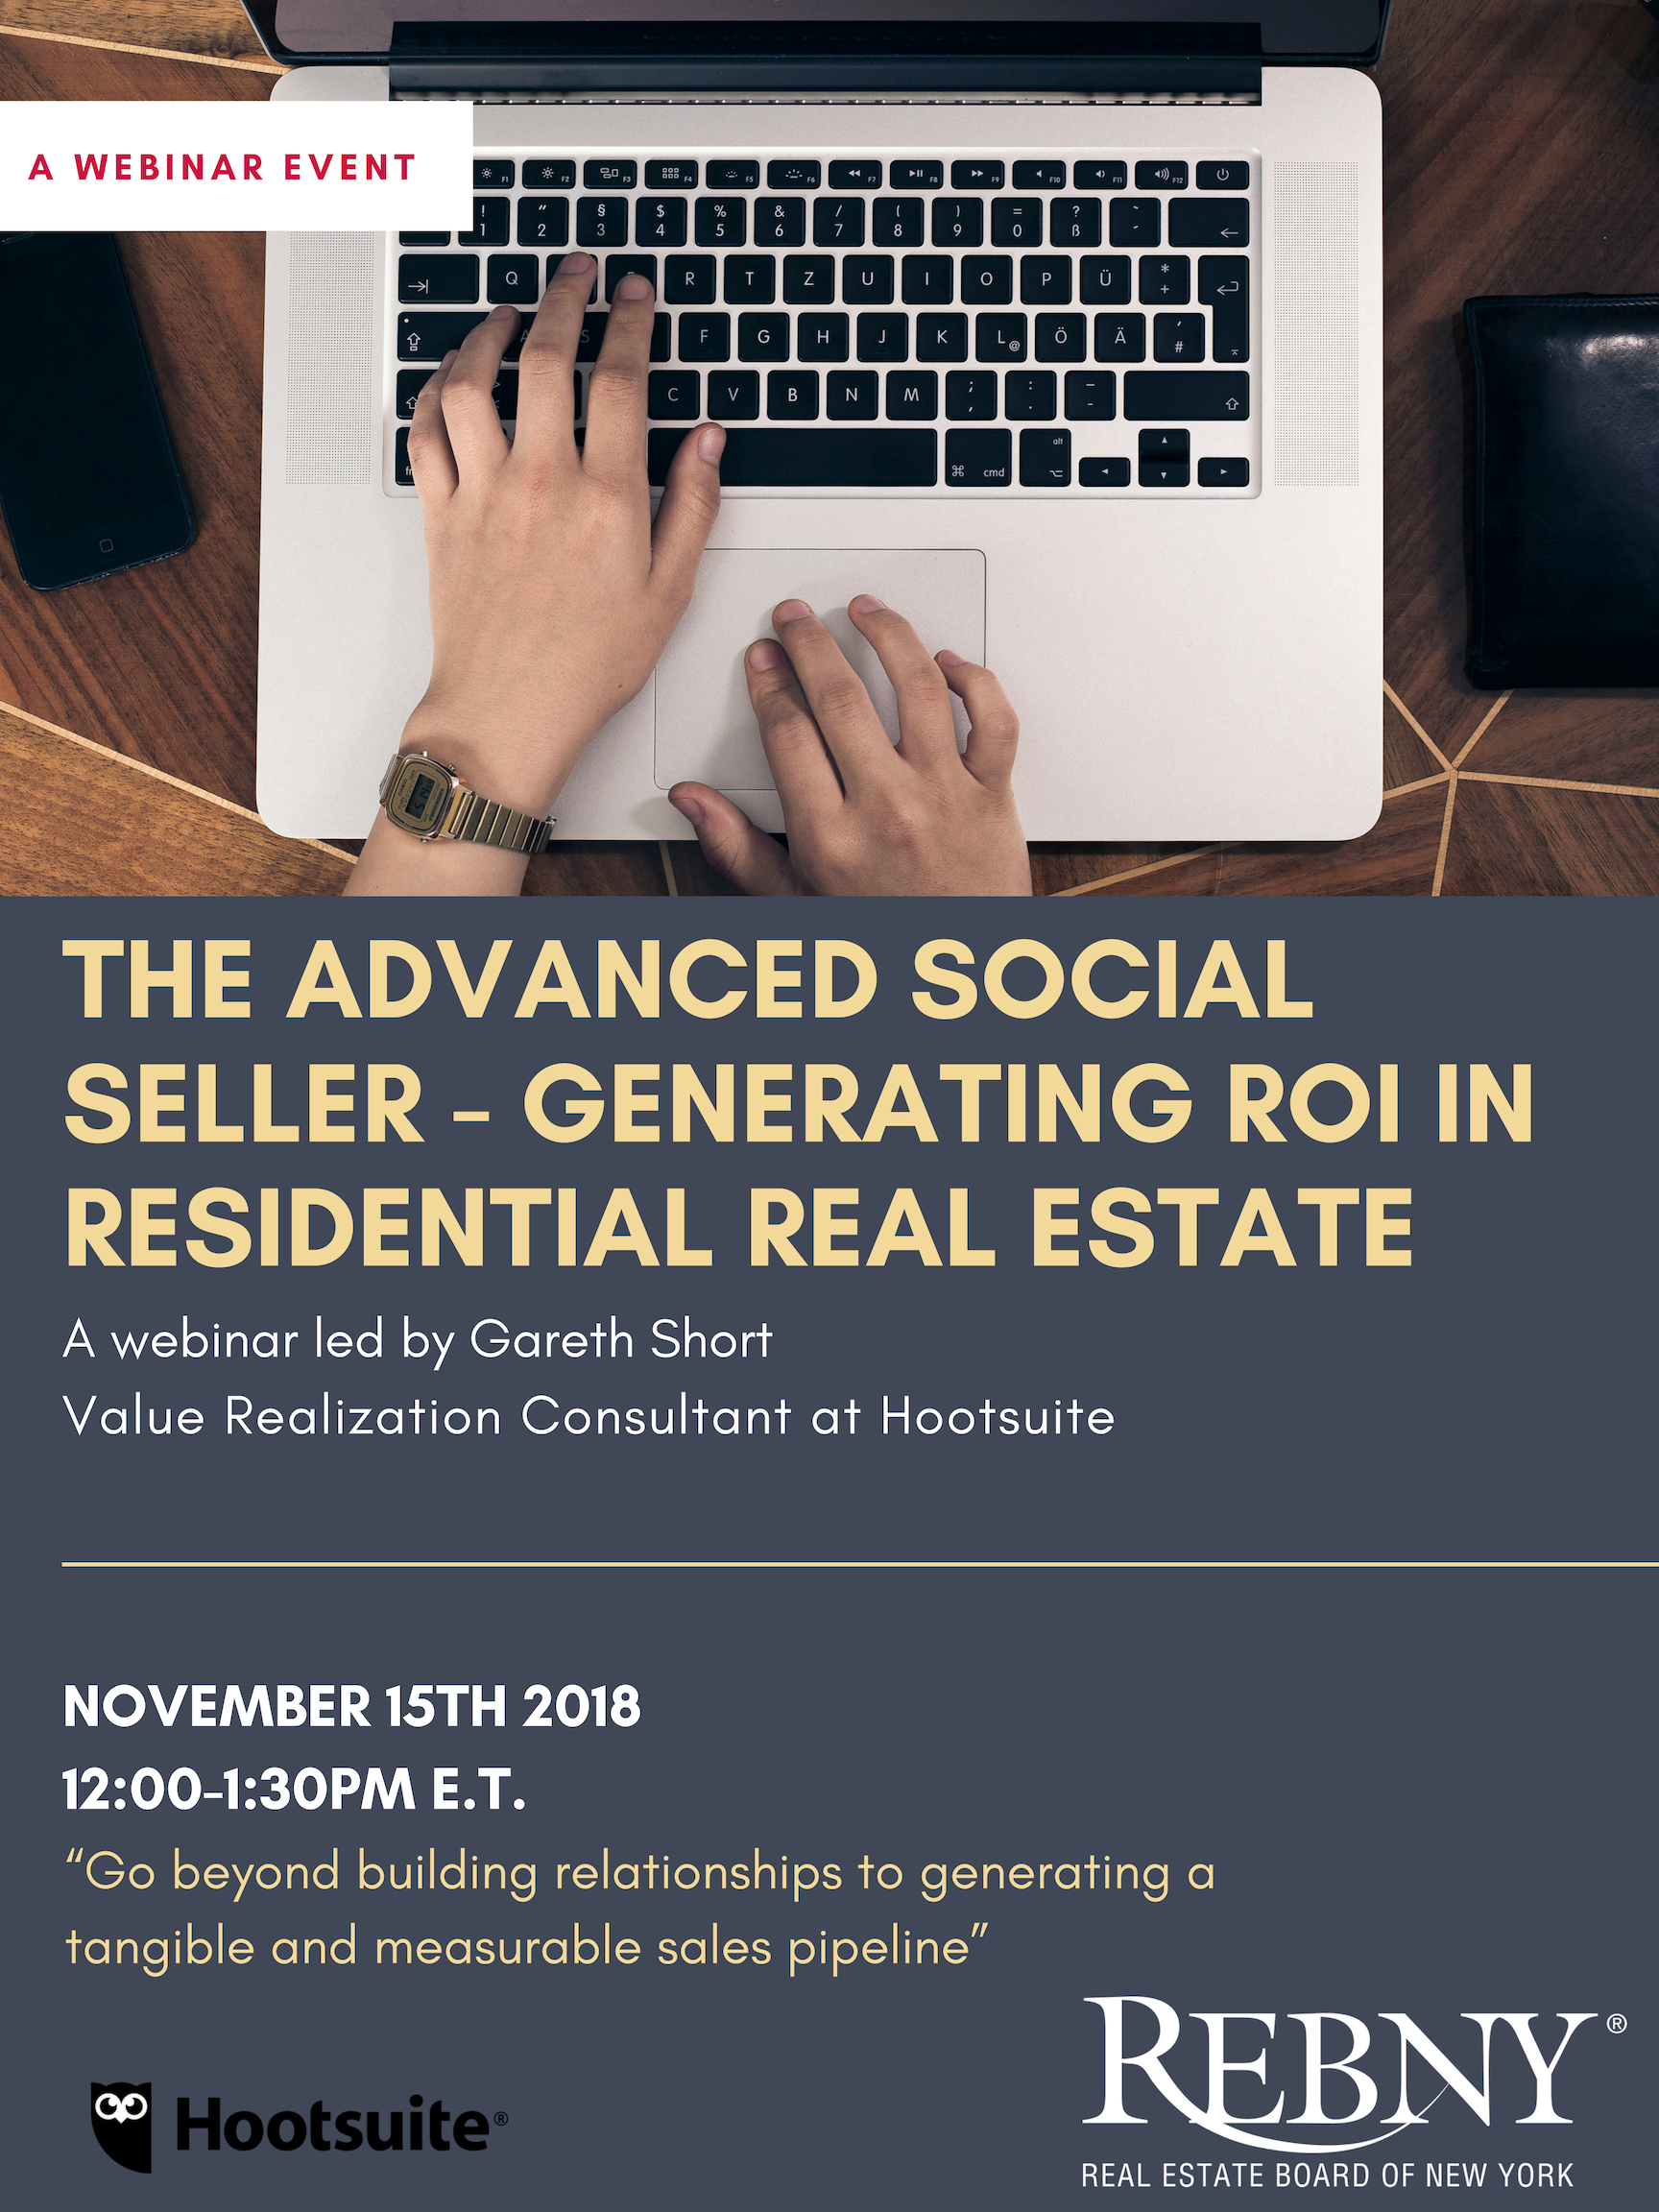 The Advanced Social Seller - Generating ROI in Residential Real Estate